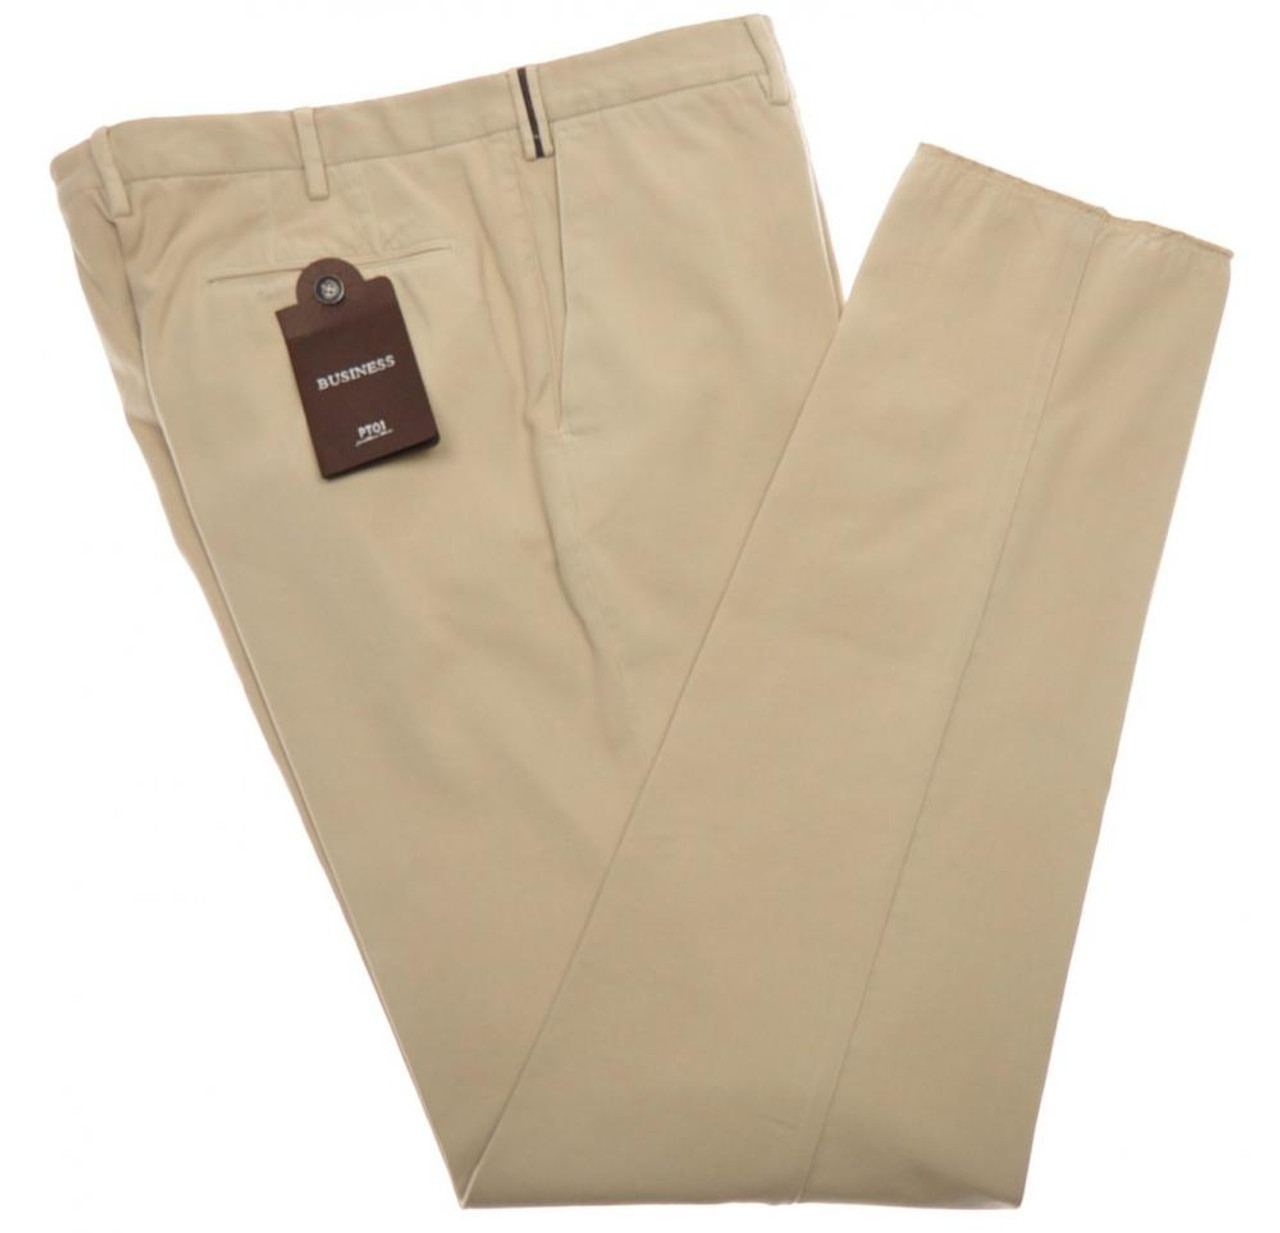 Beige Business trousers Pantaloni Torino VK398